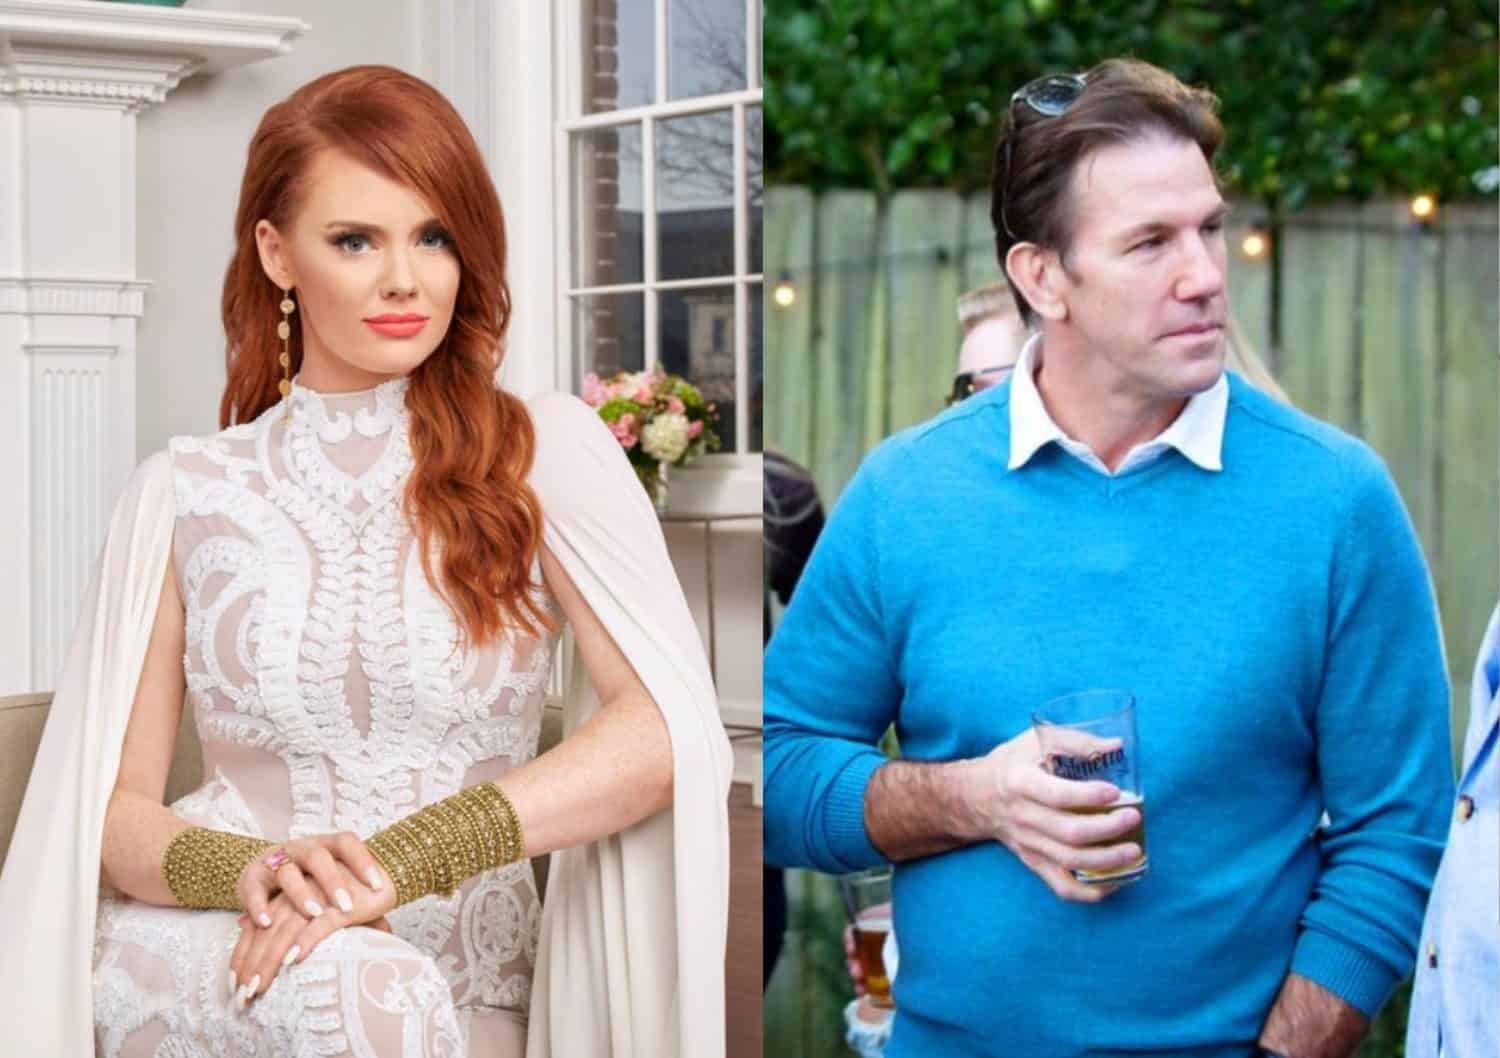 Southern Charm's Kathryn Dennis Faces New Custody Drama From Thomas Ravenel as He Prepares to Move Their Kids Away, Plus He Confirms He's Marrying Heather Mascoe